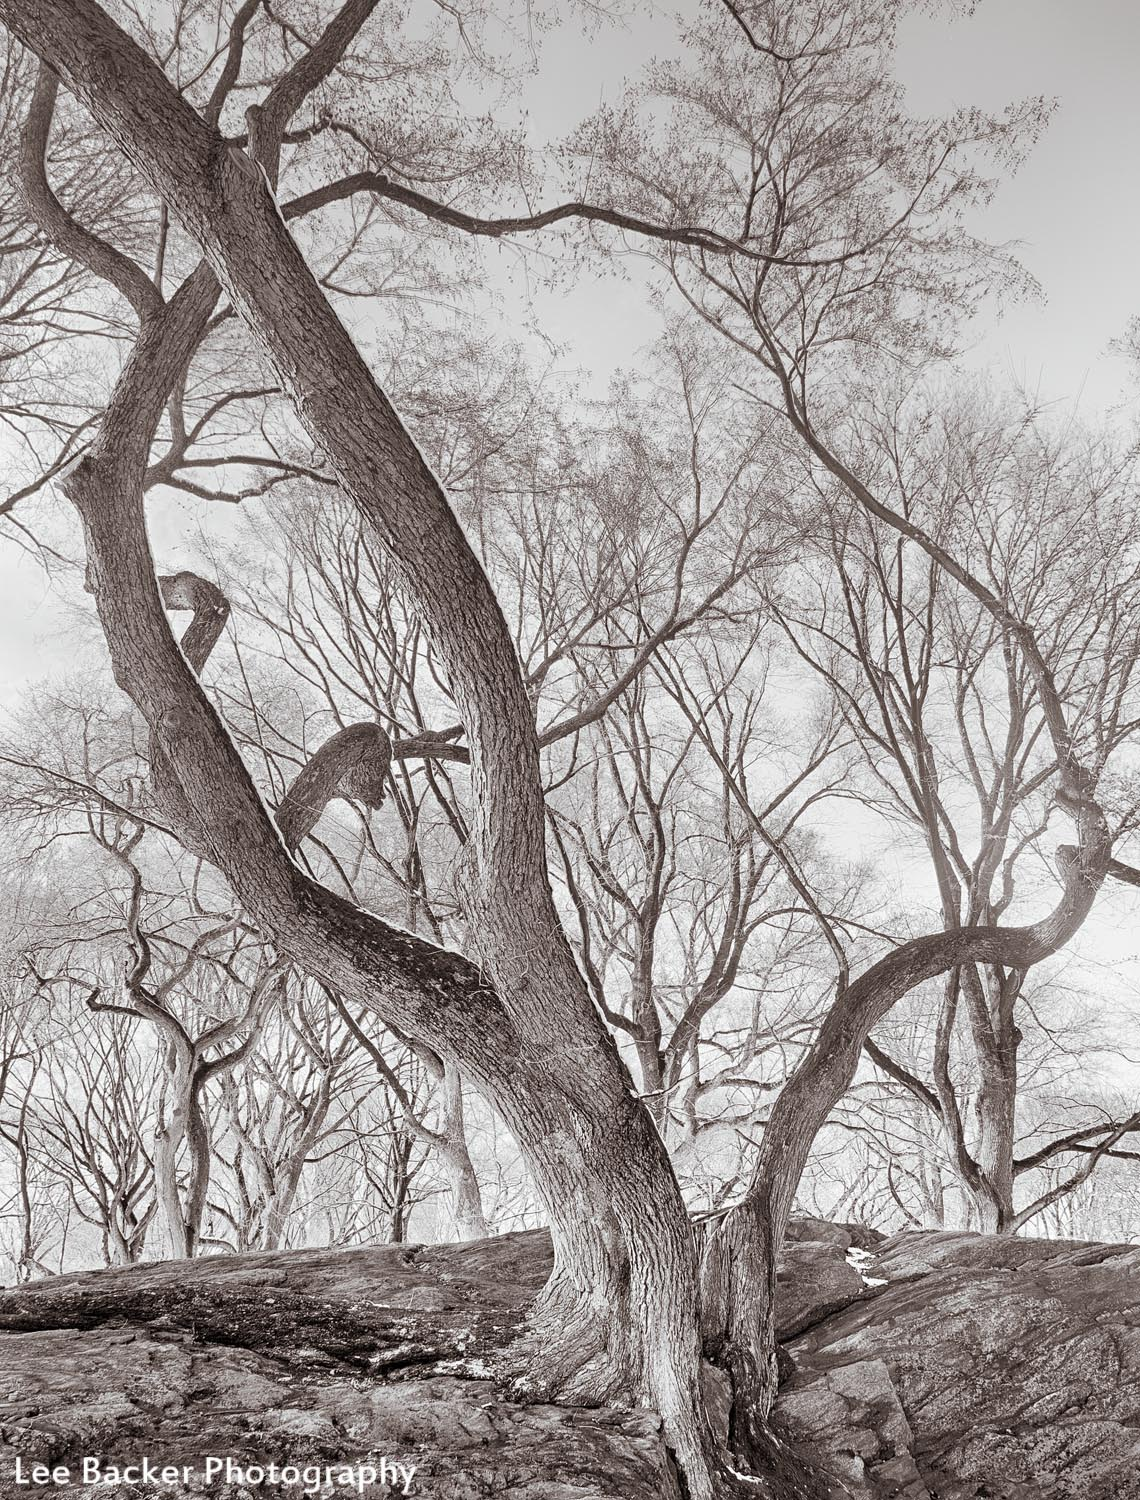 Elm Trees on Rock, Central Park, NYC